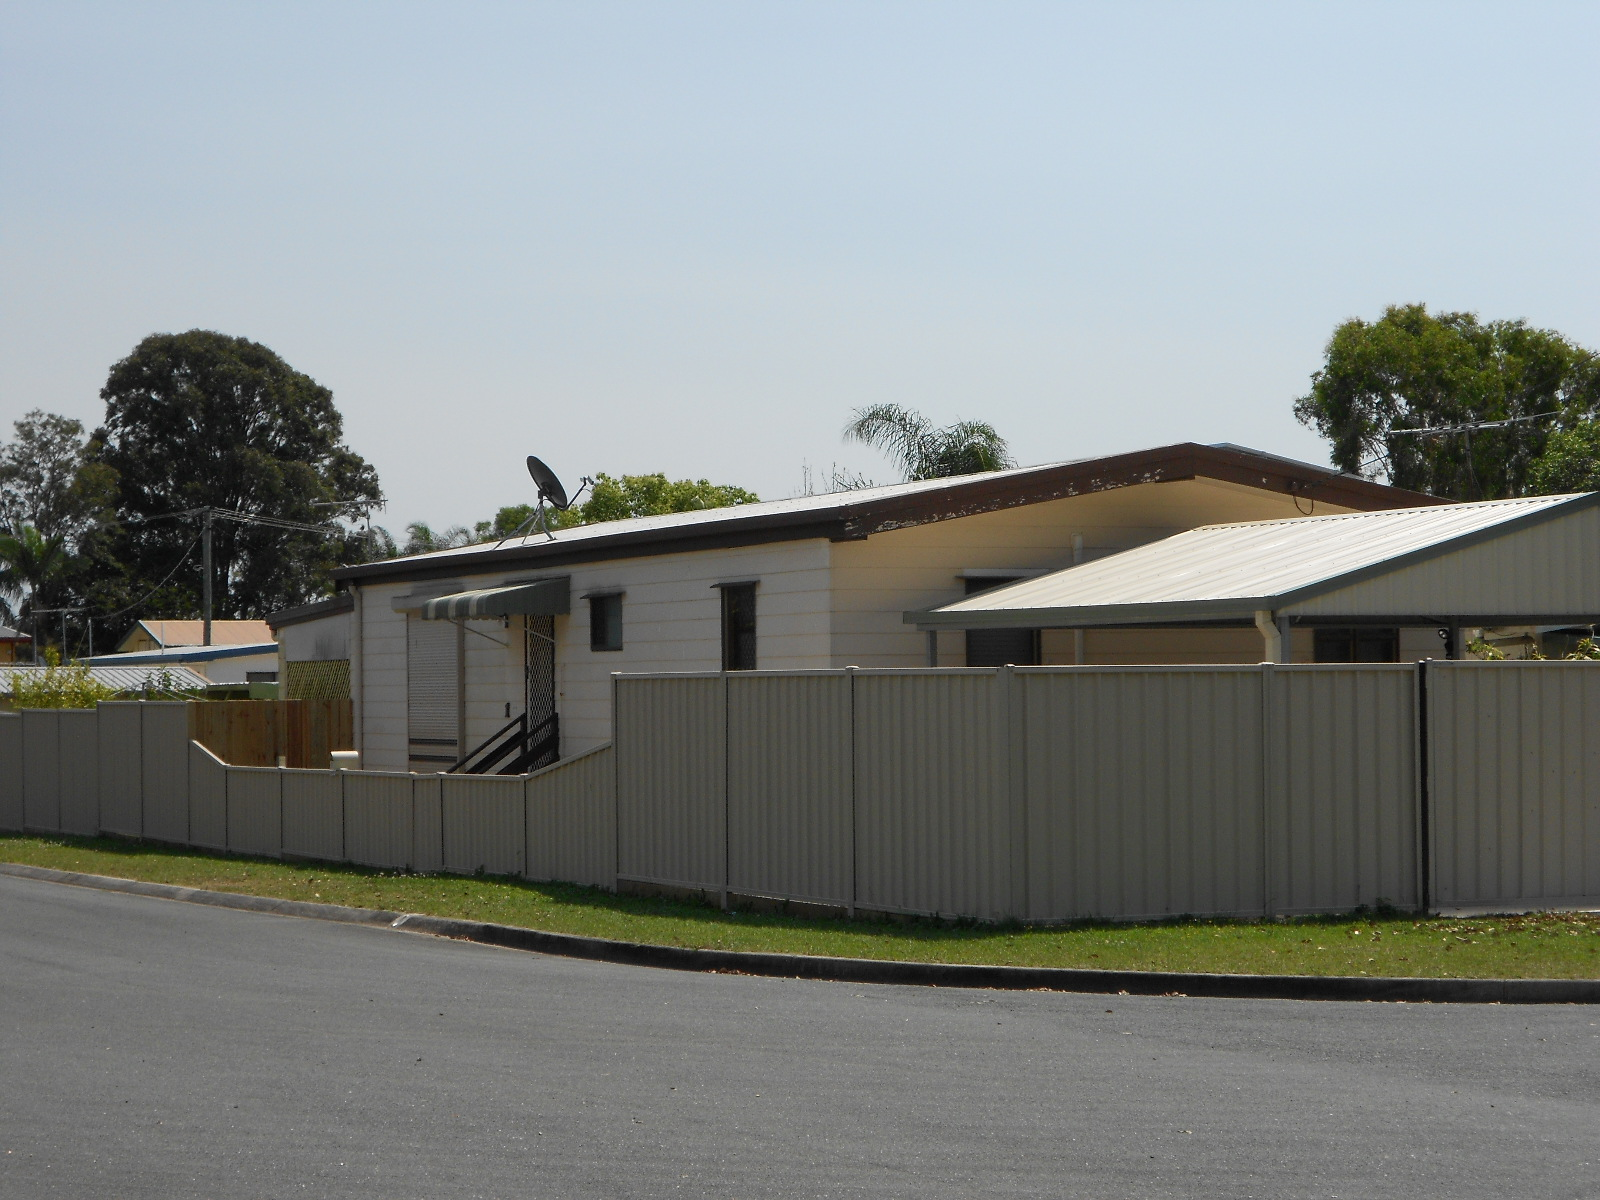 """First Home Buyer. - It might not look like much, but this was my palace back in 2001. I'd taken the money I'd saved in my term deposit and combined it with the first home buyers grant to buy this 3 bedroom box (I mean house) in Deception Bay, Queensland.I hold fond memories of this era as my house was the """"go to"""" place where my friends and I would have BBQ's and party on Saturday nights.I bought the house across the road a mere 8 months late because the Deception Bay market had followed suit after neighbouring Redcliffe had boomed and the equity in my property allowed me to refinance with the bank and grow my portfolio."""